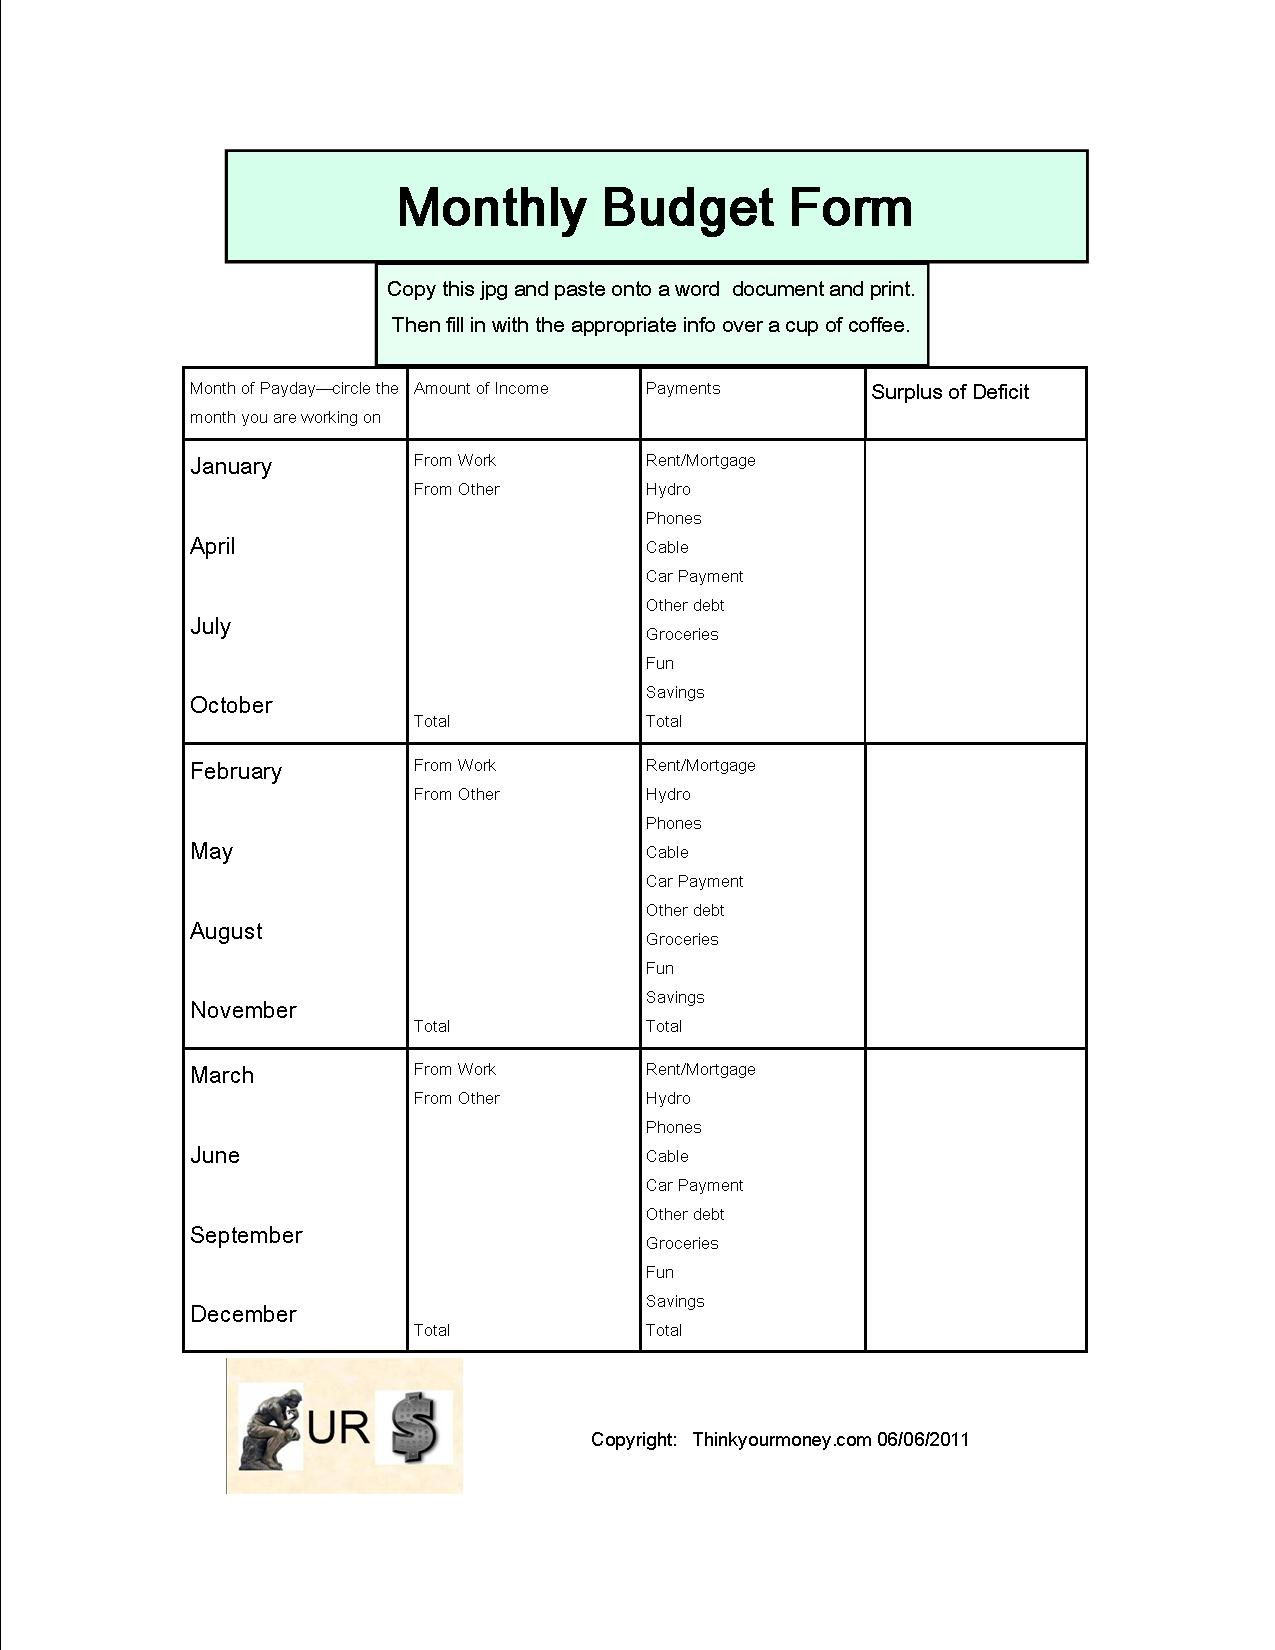 free how to make a monthly budget spreadsheet tutorials